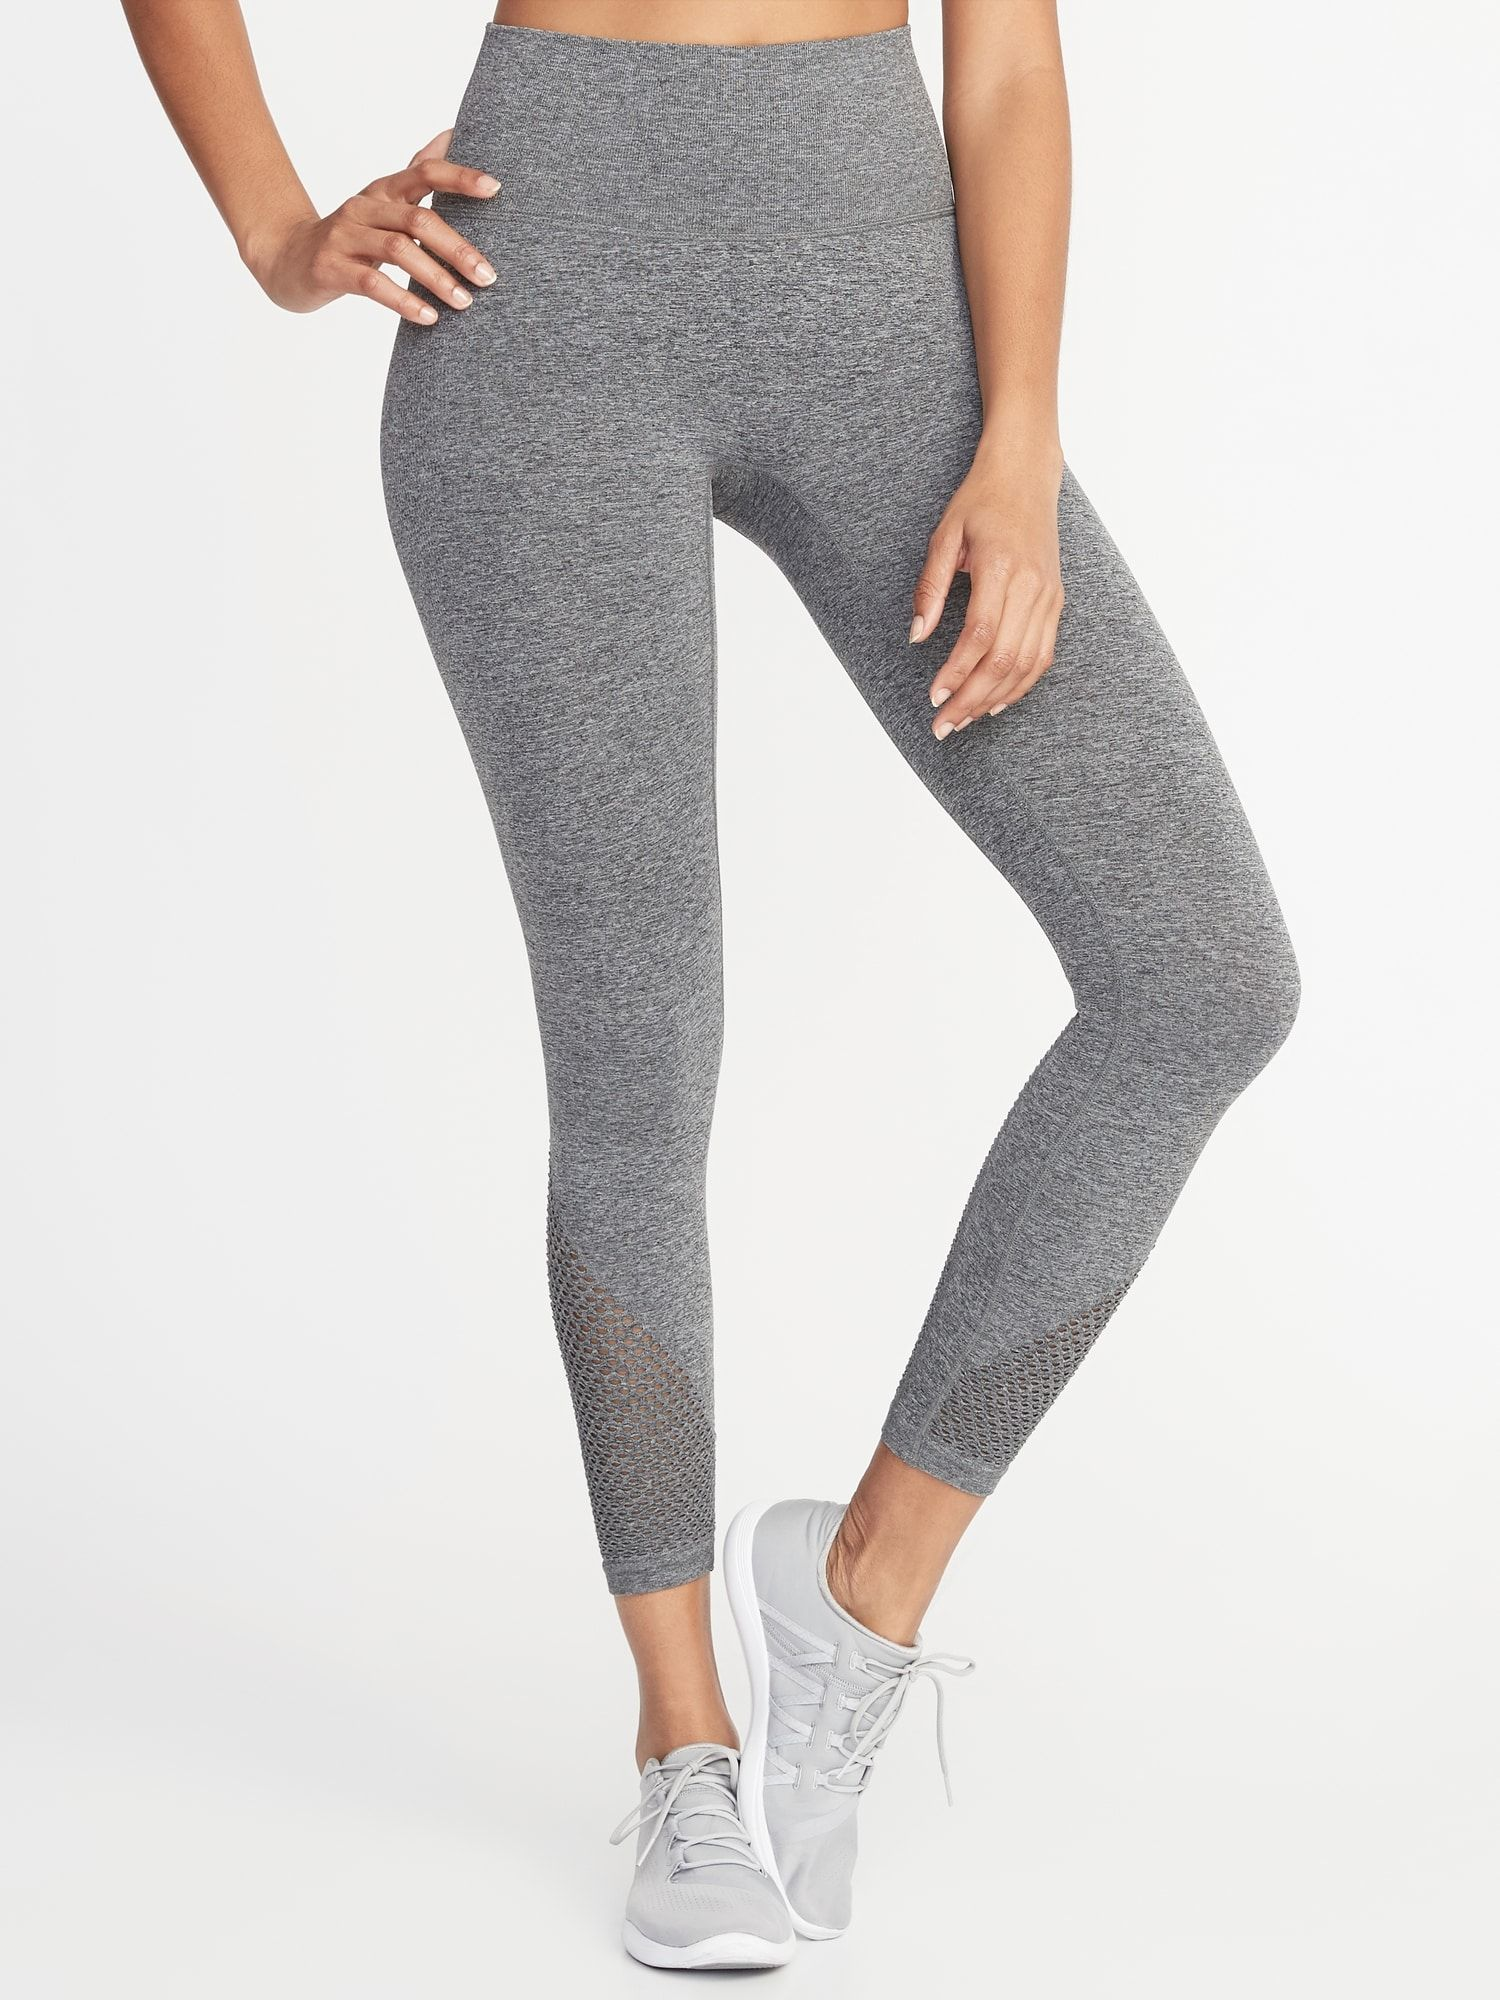 220bb4098fc26 $35 on sale   small   gray Women's Leggings, Mesh, Cute Outfits, Pants